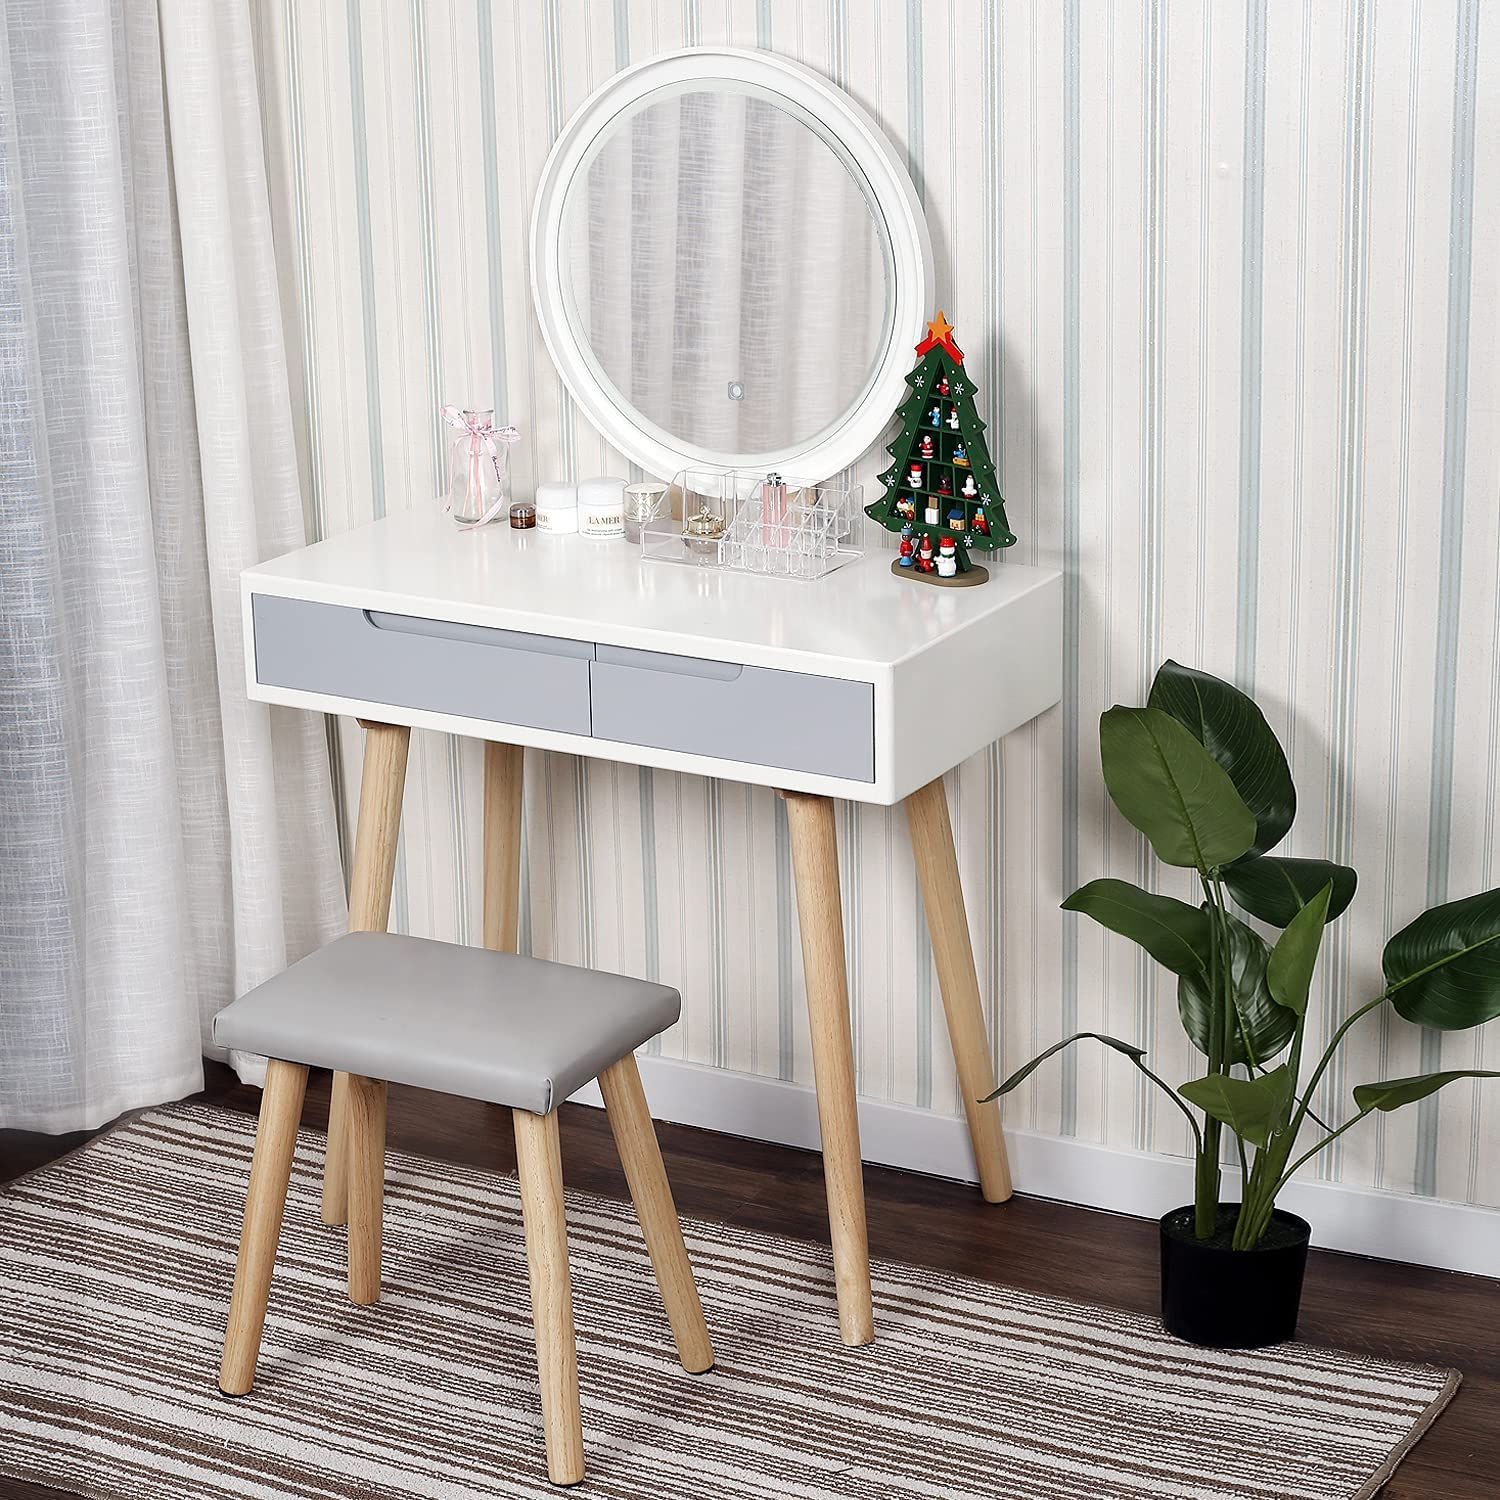 YOURLITEAMZ Save money Round Dressing Table with Be Mirror Vanity and Max 63% OFF Light